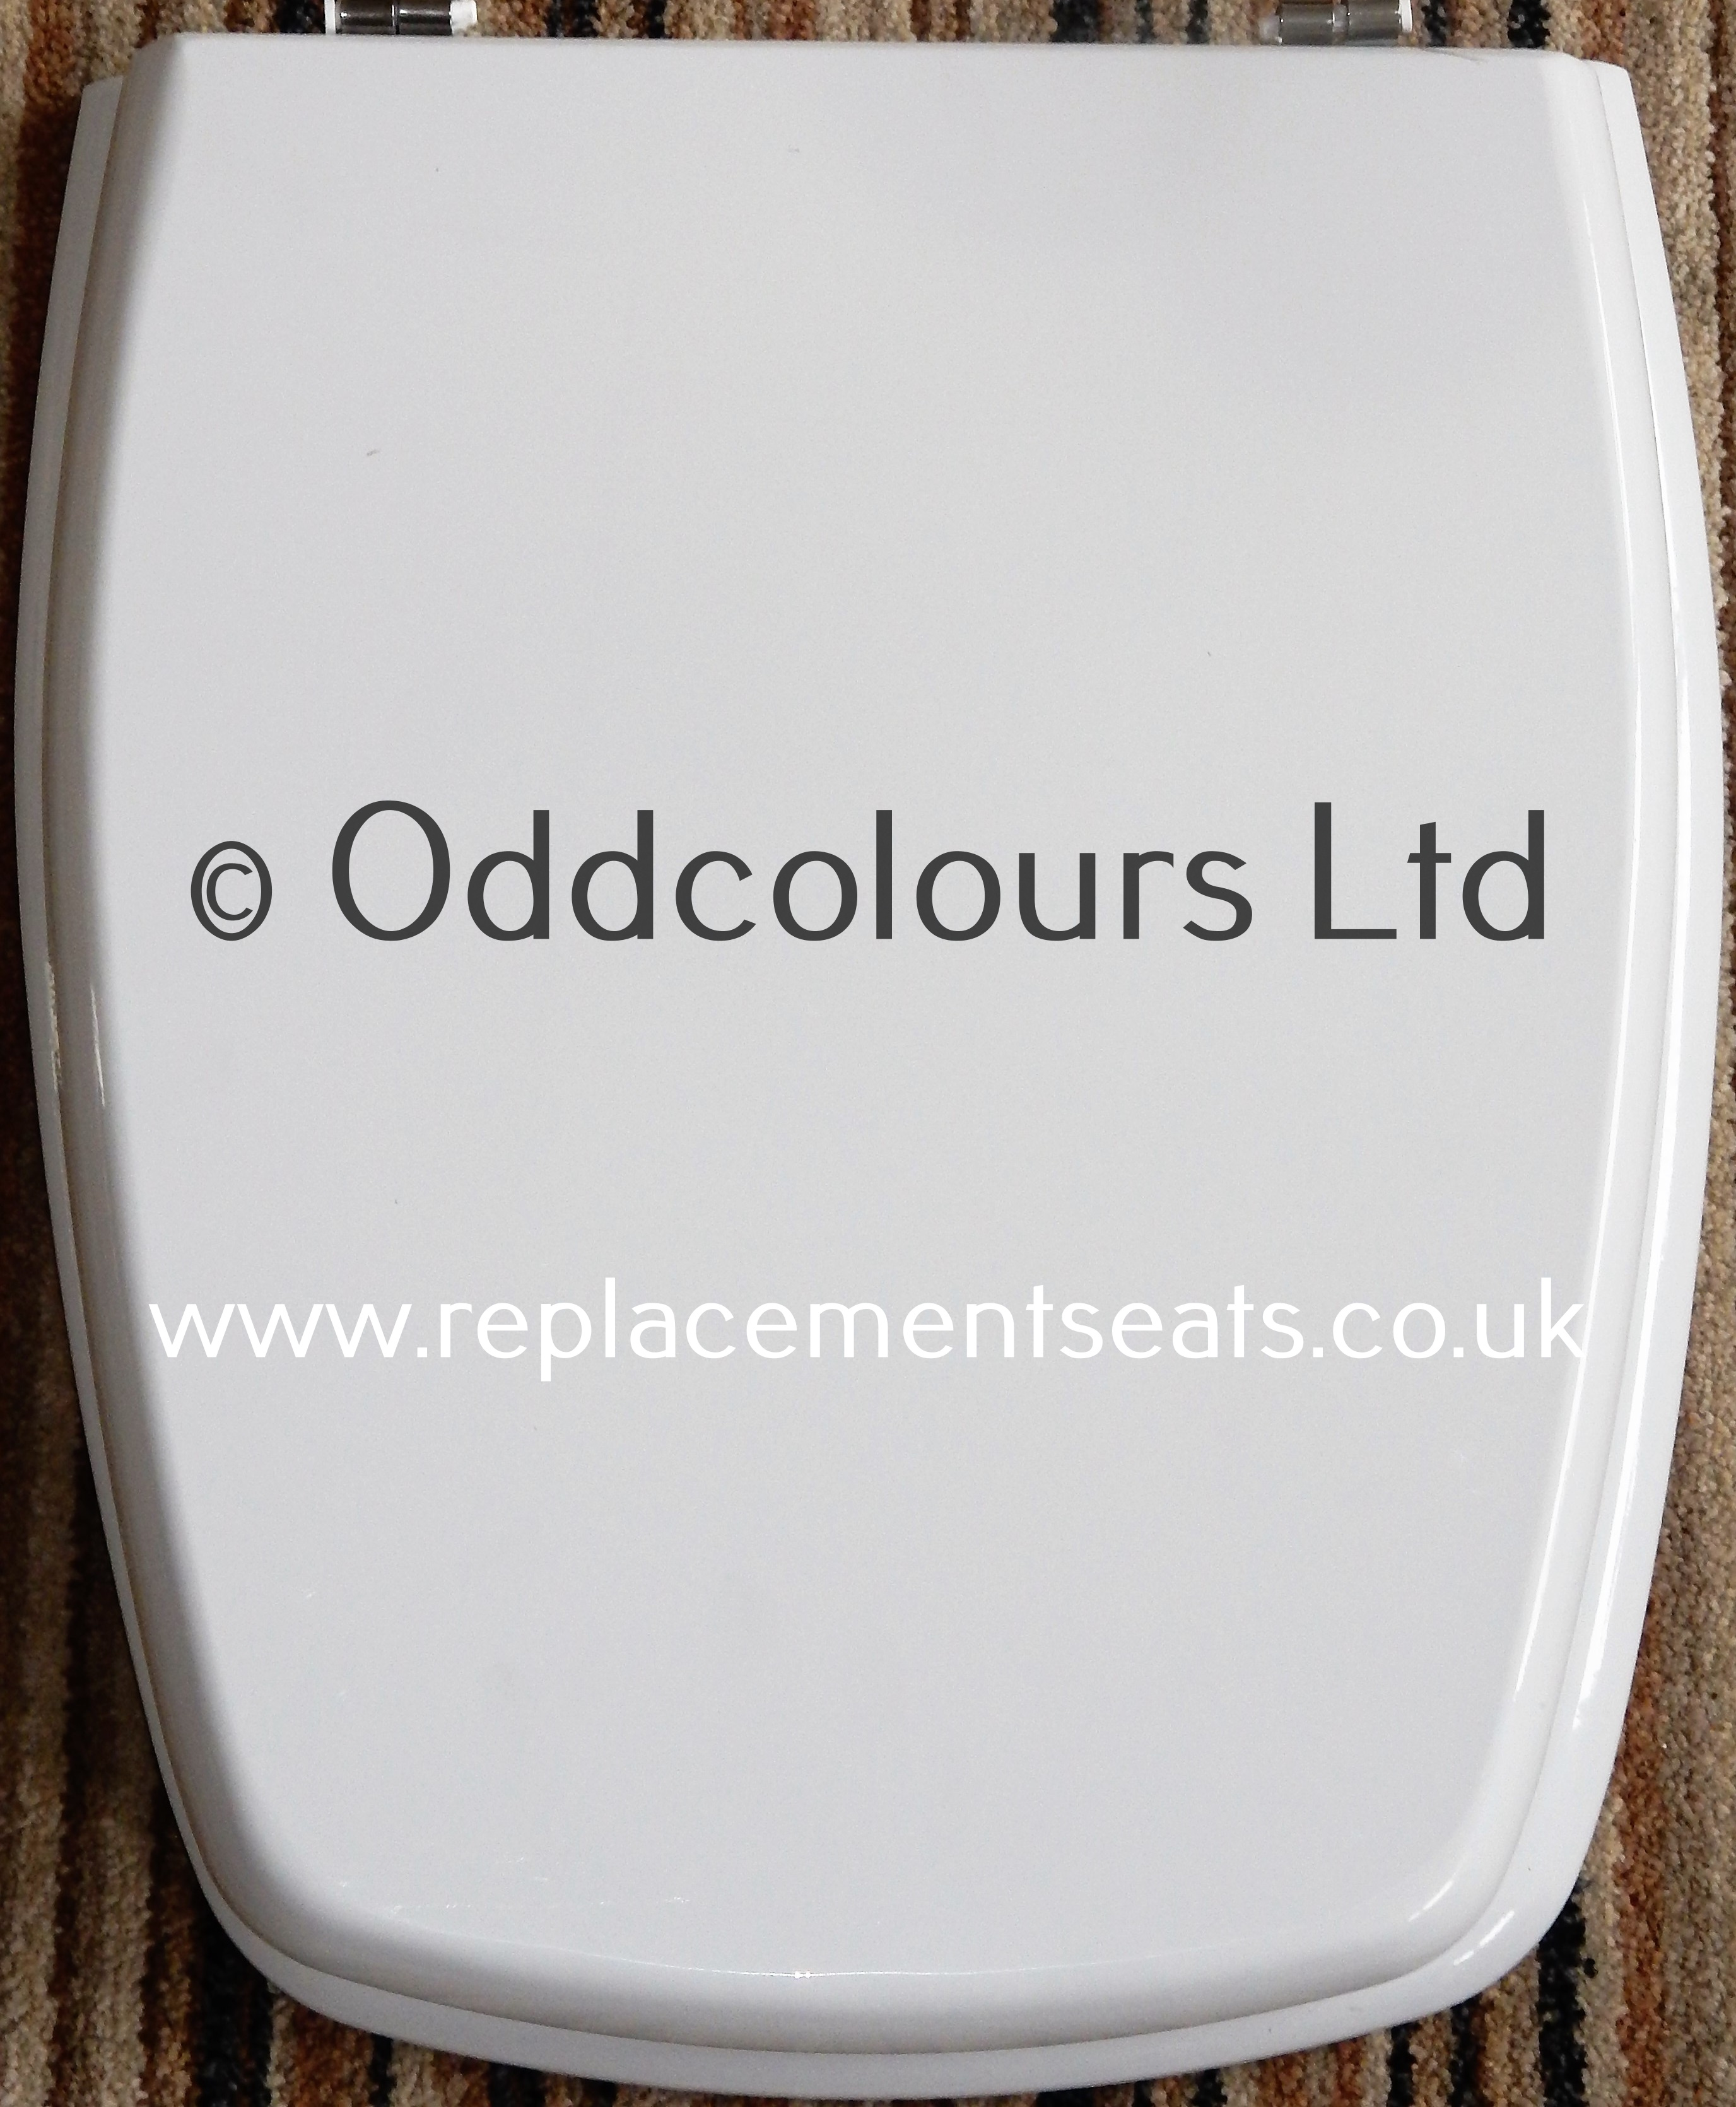 Selles Cheverny Resin Replica Seat